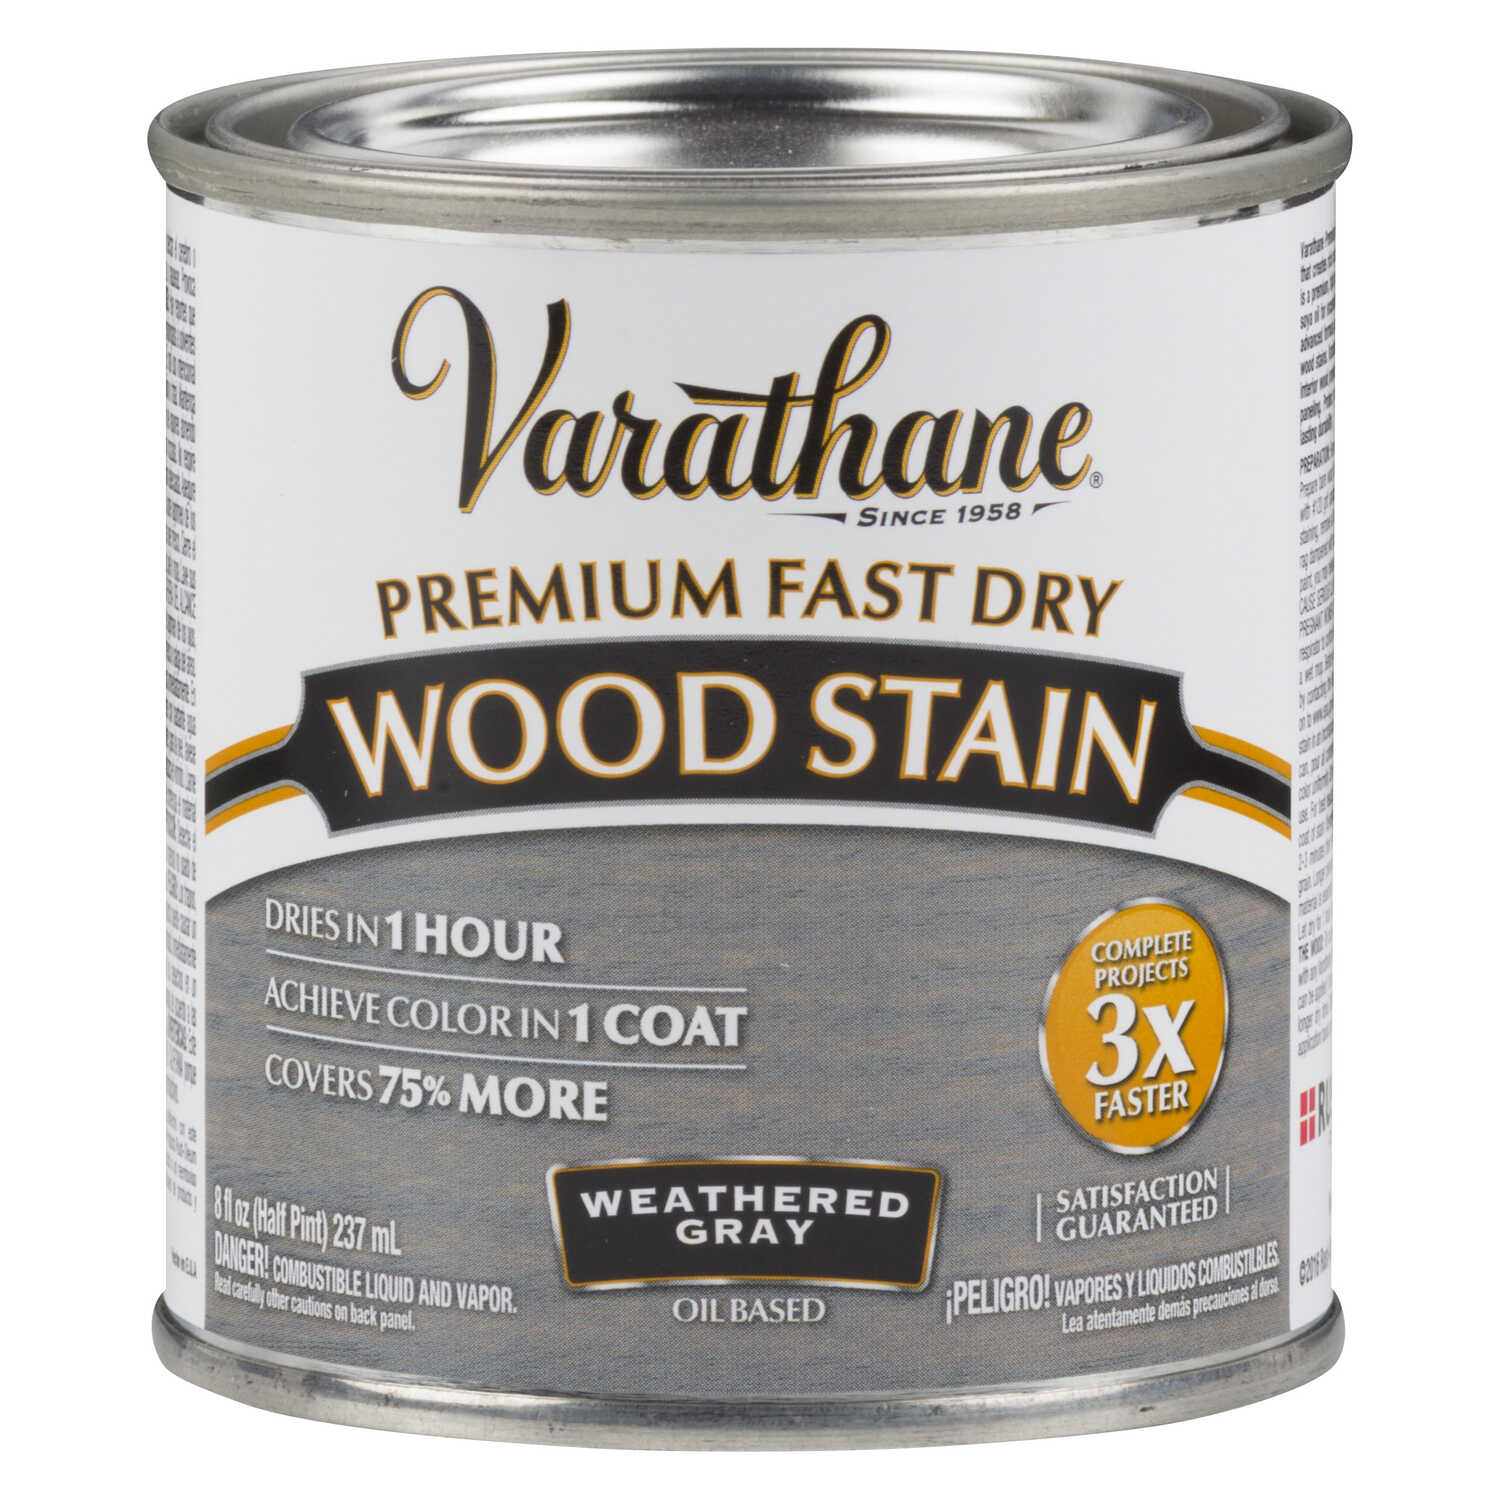 Varathane  Premium Fast Dry  Semi-Transparent  Weathered Gray  Wood Stain  0.5 pt.